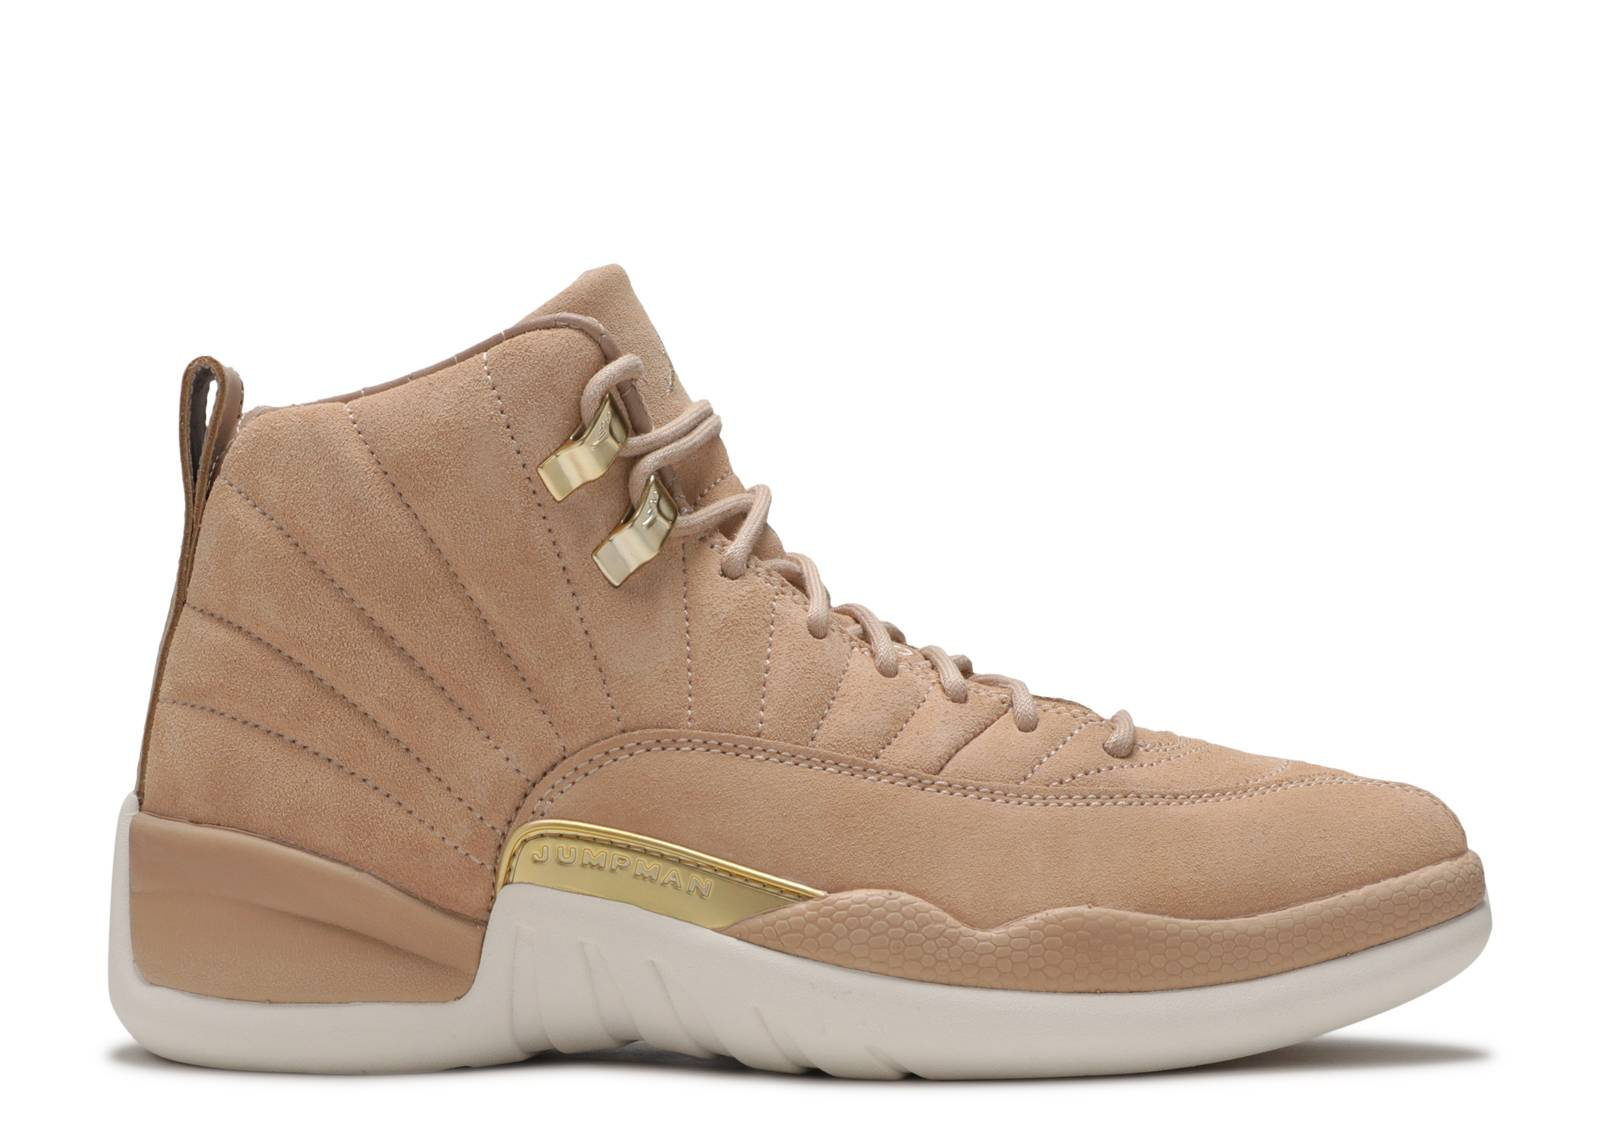 check out 3a8f0 df4b9 wmns air jordan 12 reto